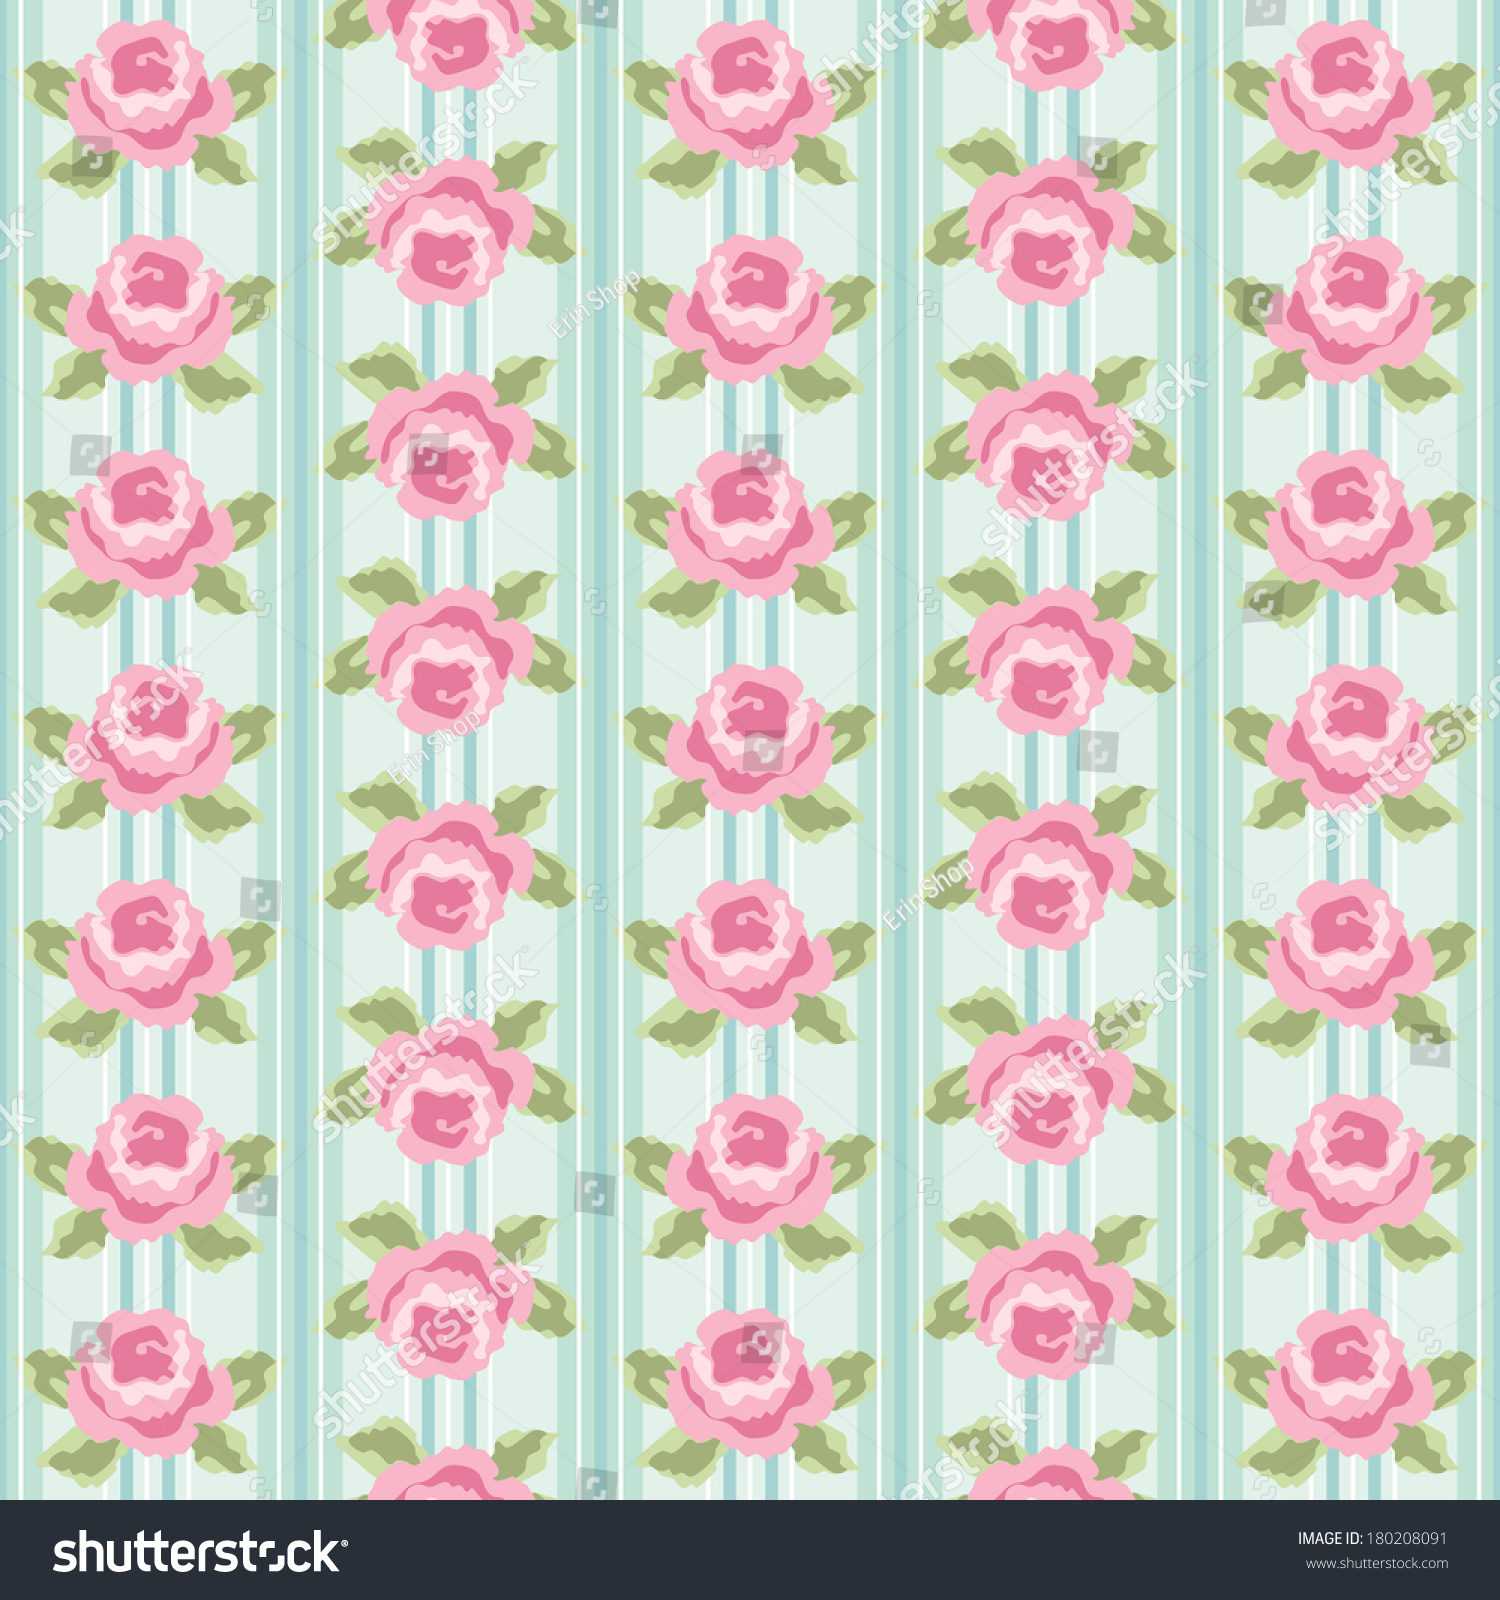 Retro Background As Striped Wallpaper With Roses In Shabby Chic Style 180208091